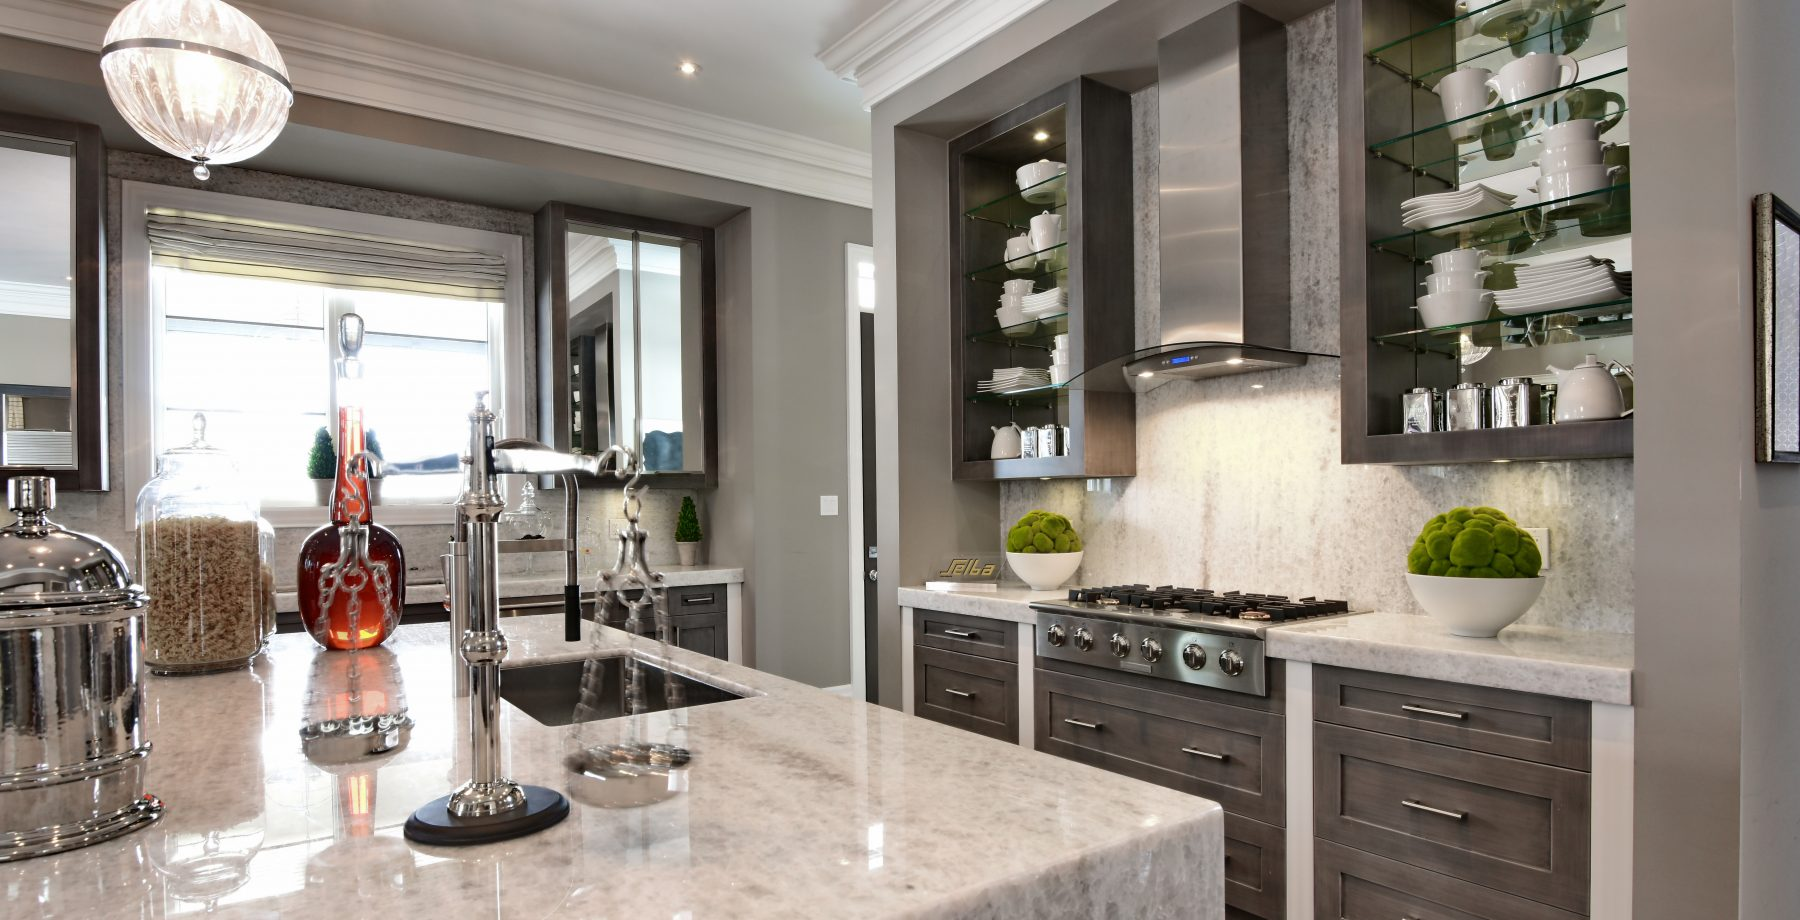 Home  Selba Kitchens  Baths is a Canadian based company